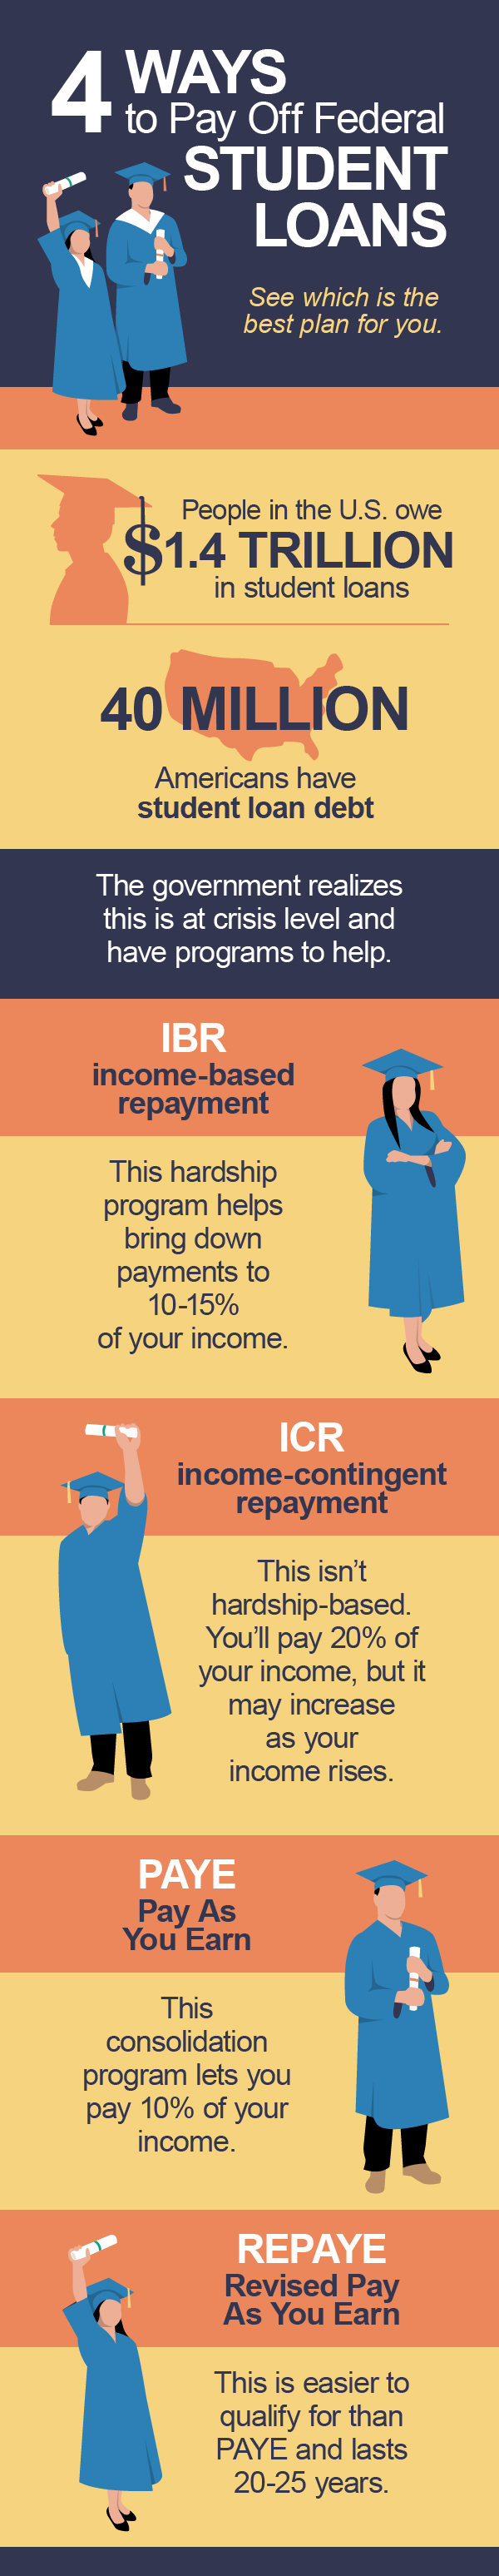 4 Ways to Pay Off Your Federal Student Loans infographic